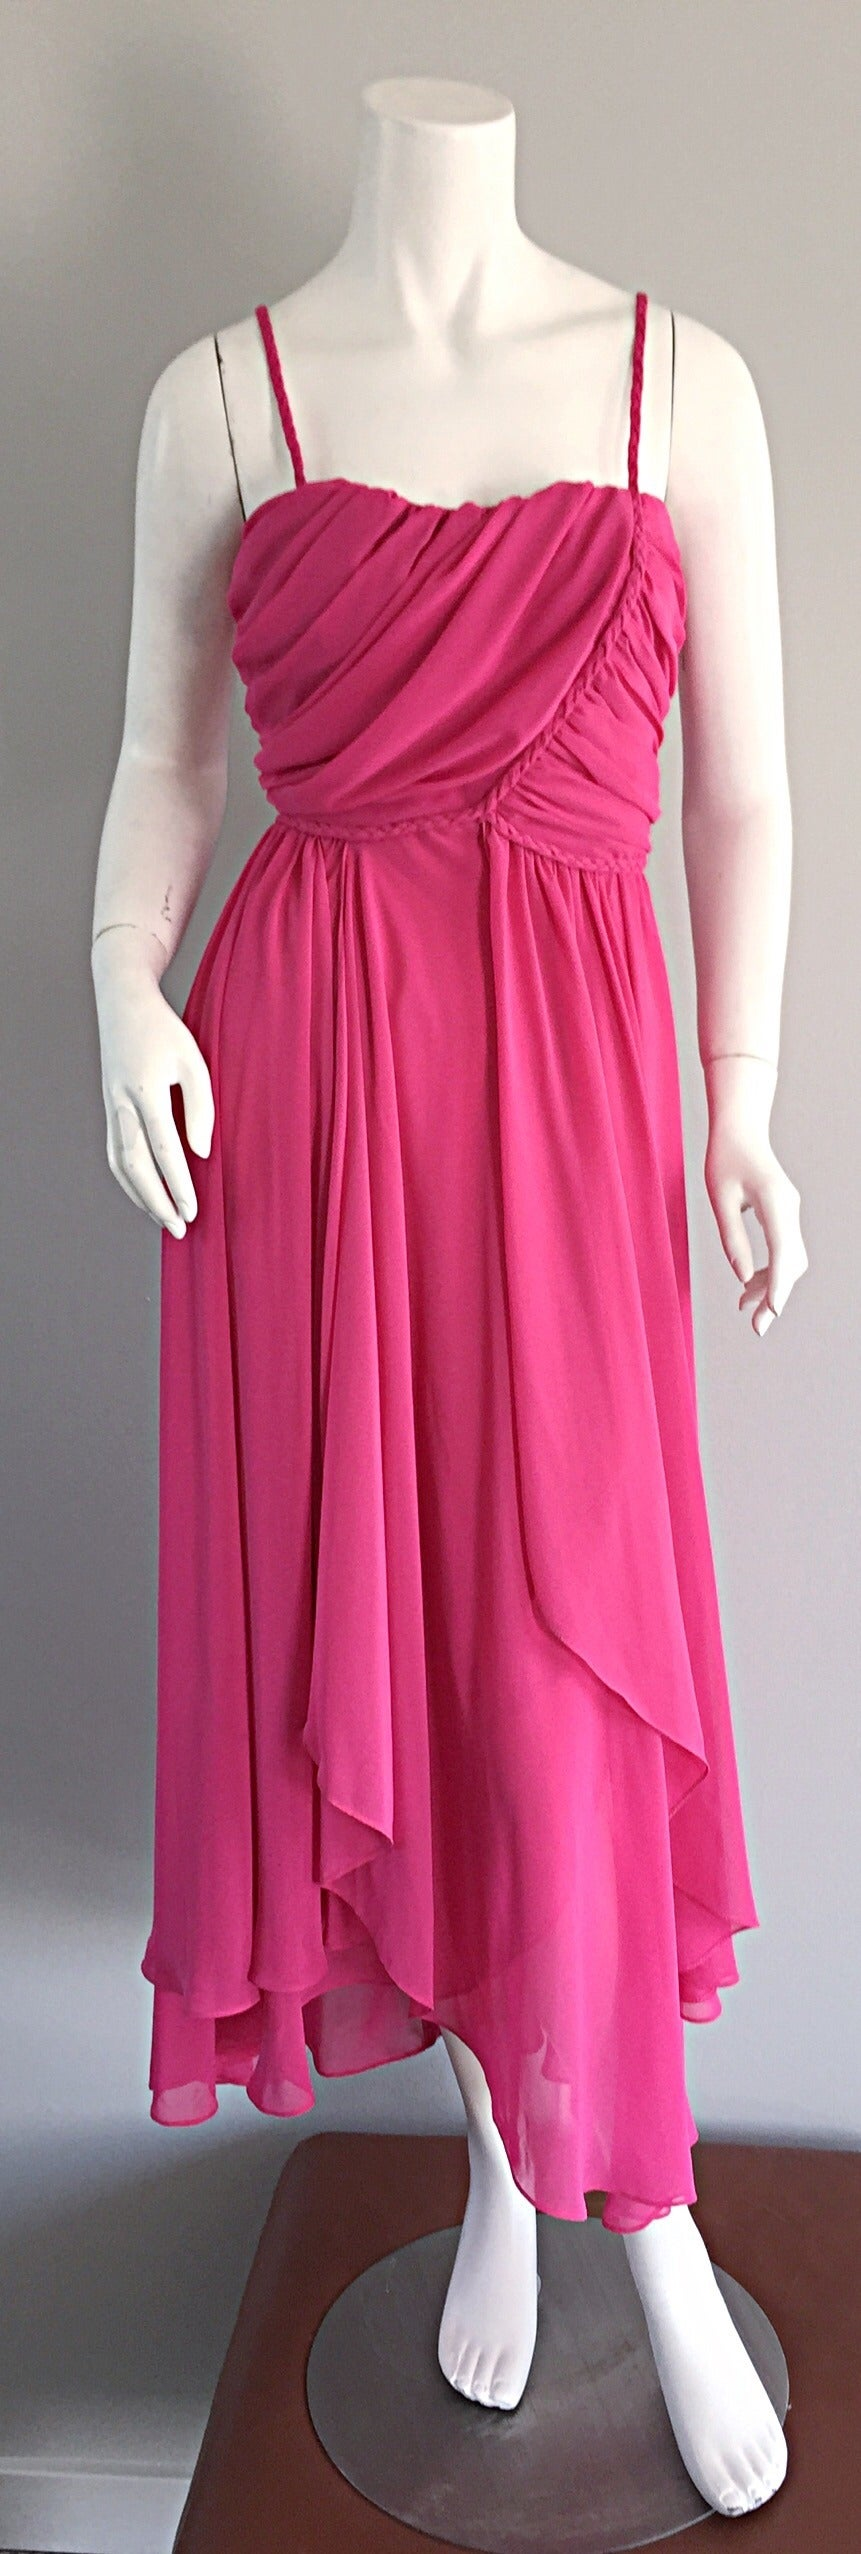 1970s Joy Stevens Hot Pink Vintage Flowy Grecian Disco Dress w/ Braided Details For Sale 4